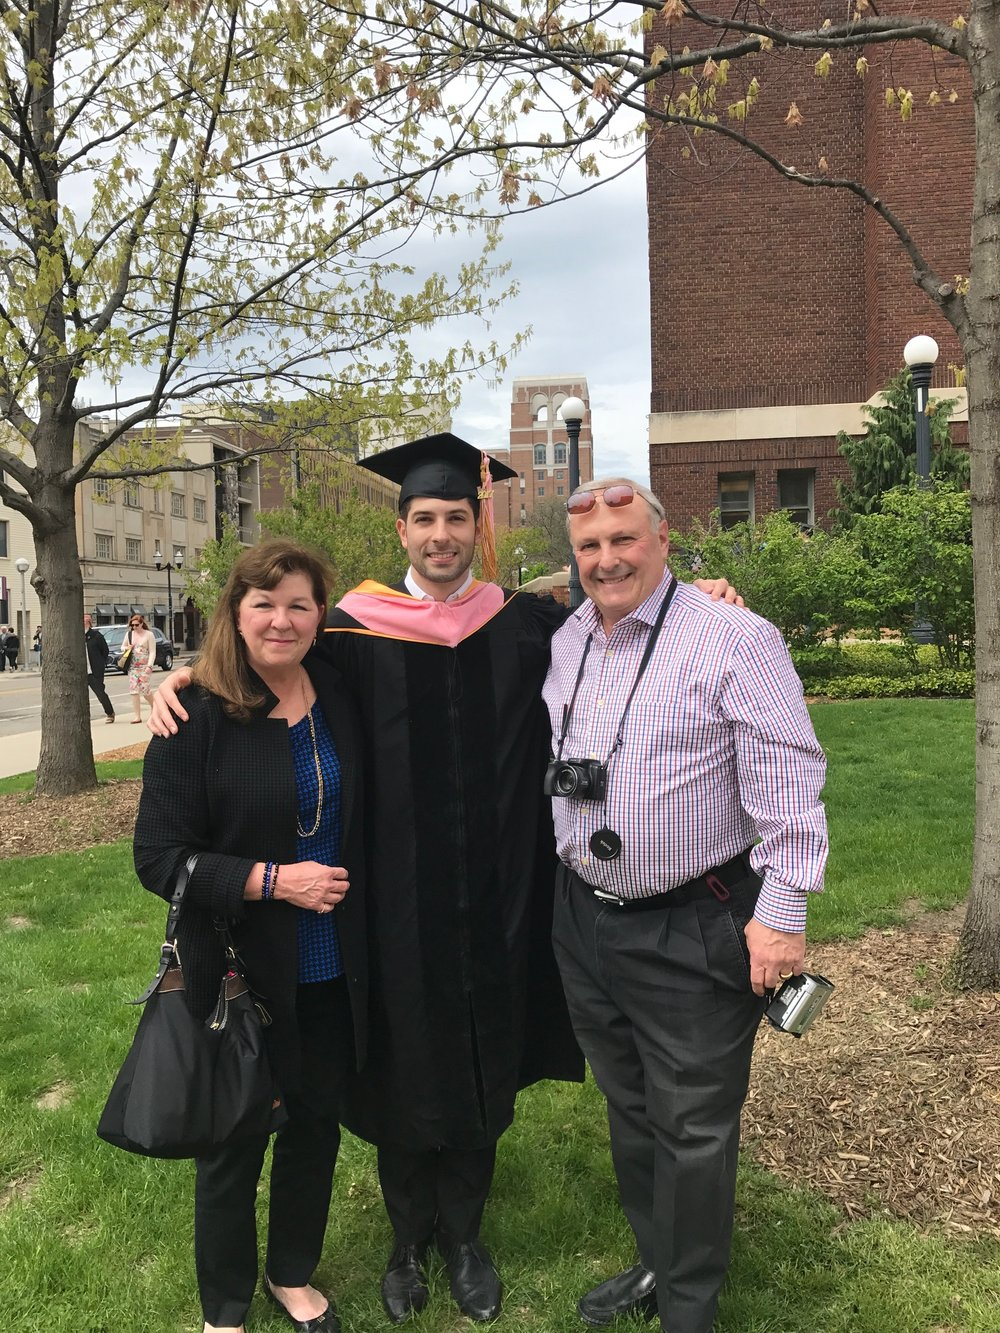 With the proud parents outside Hill Auditorium. So thankful that they could come up to Ann Arbor to celebrate!